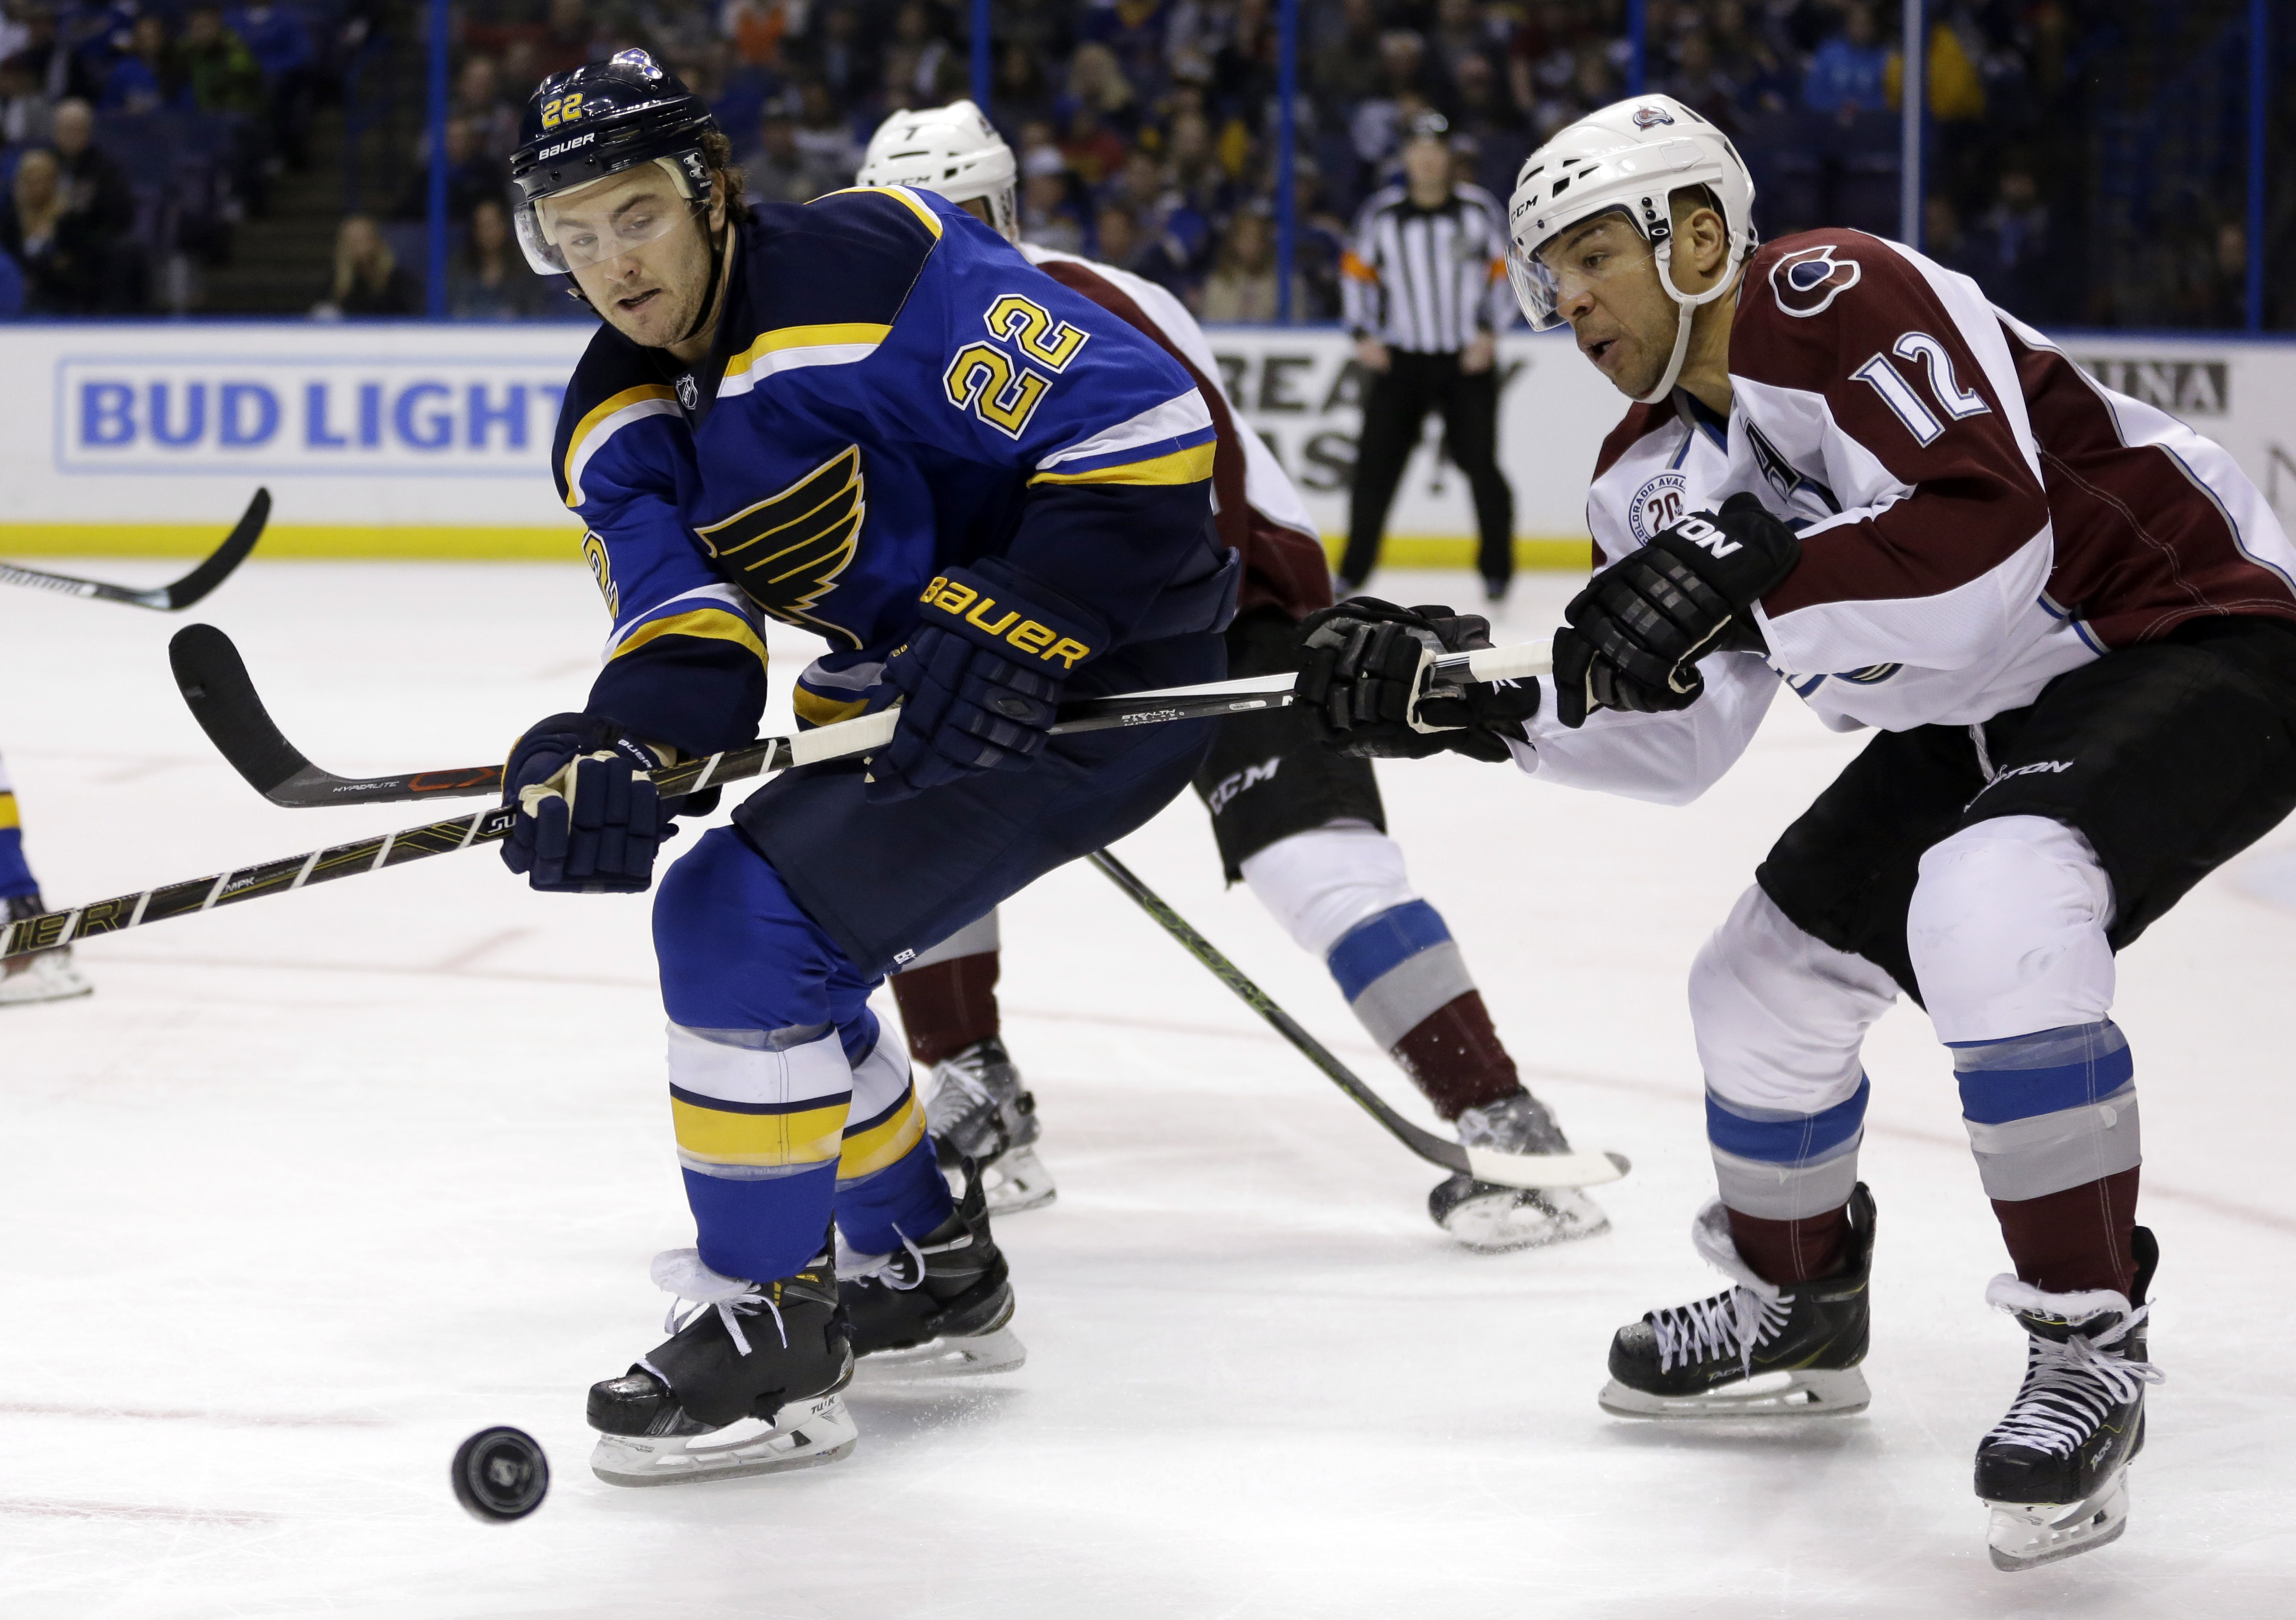 St. Louis Blues' Kevin Shattenkirk, left, watches the puck as Colorado Avalanche's Jarome Iginla defends during the third period of an NHL hockey game Tuesday, March 29, 2016, in St. Louis. The Blues won 3-1. (AP Photo/Jeff Roberson)